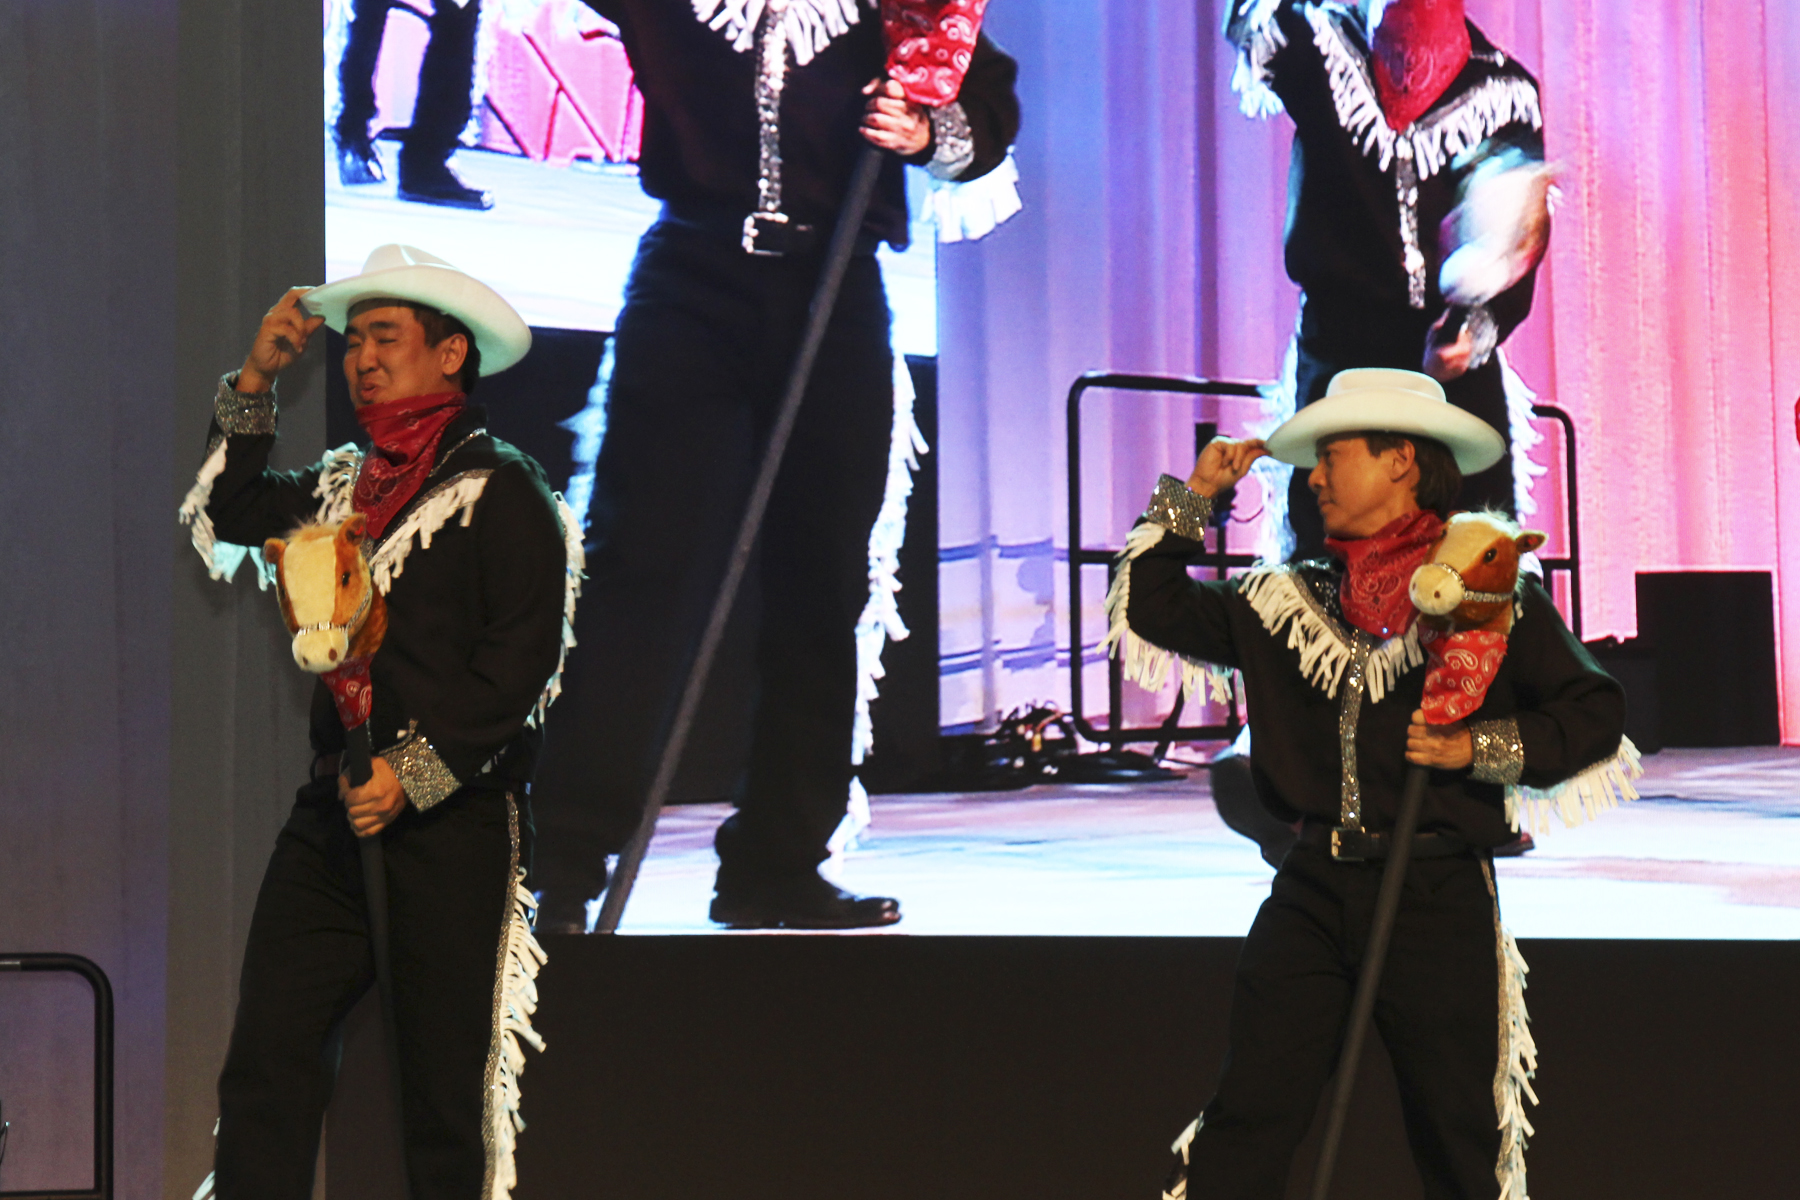 2016 AN EVENING AROUND THE WORLD: Howdy! CFS cowboy performers Michael Young (Albert C. Kobayashi, Inc.) & Glen Kaneshige (Nordic PCL Construction, Inc.) tip their hats to the crowd!